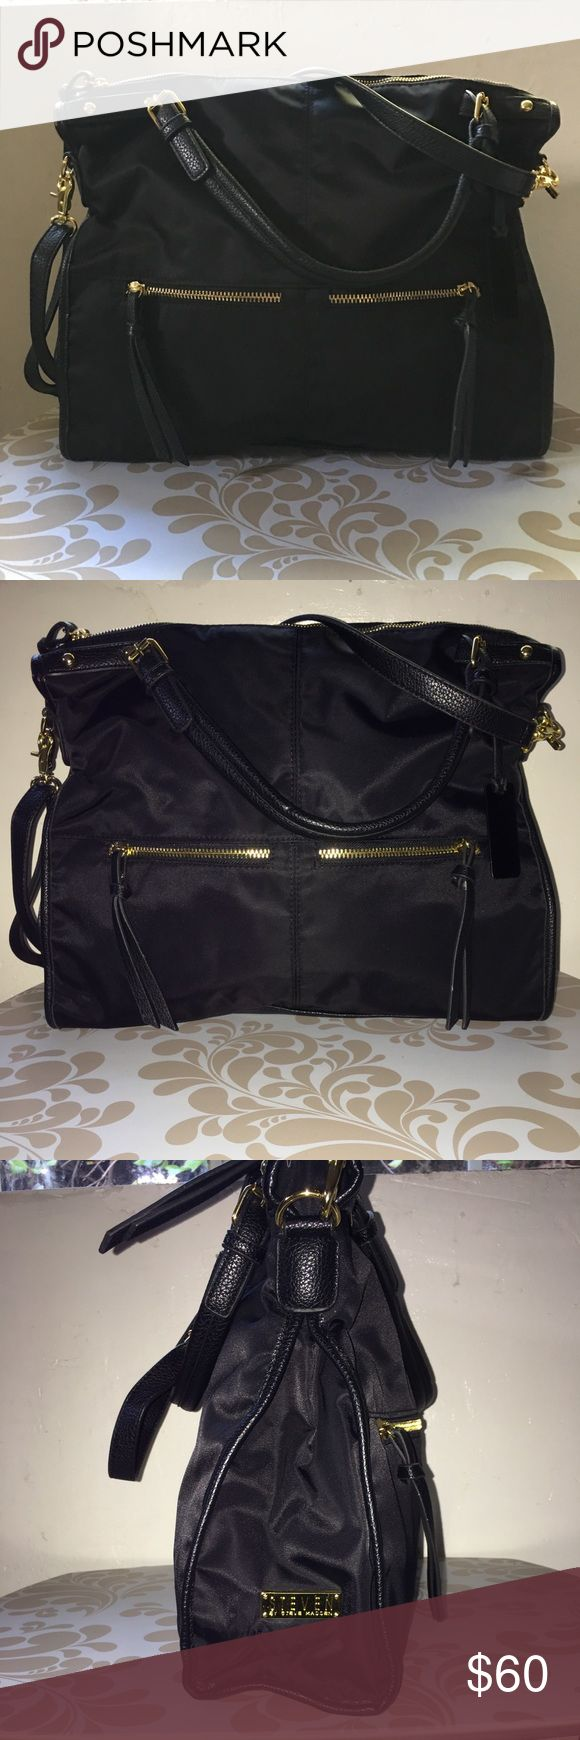 """Steven by Steve Madden Large Crossbody Handbag This is a like new Steven by Steve Madden Black handbag, with gold hardware. Features a detachable strap and two handles. The name plate is on the side as pictured. It is a medium to large sized handbag pls refer to measurement to avoid confusion. If you have any questions feel free to ask.  Width:5""""  Length: 17""""  Depth: 15"""" Steven By Steve Madden Bags Crossbody Bags"""